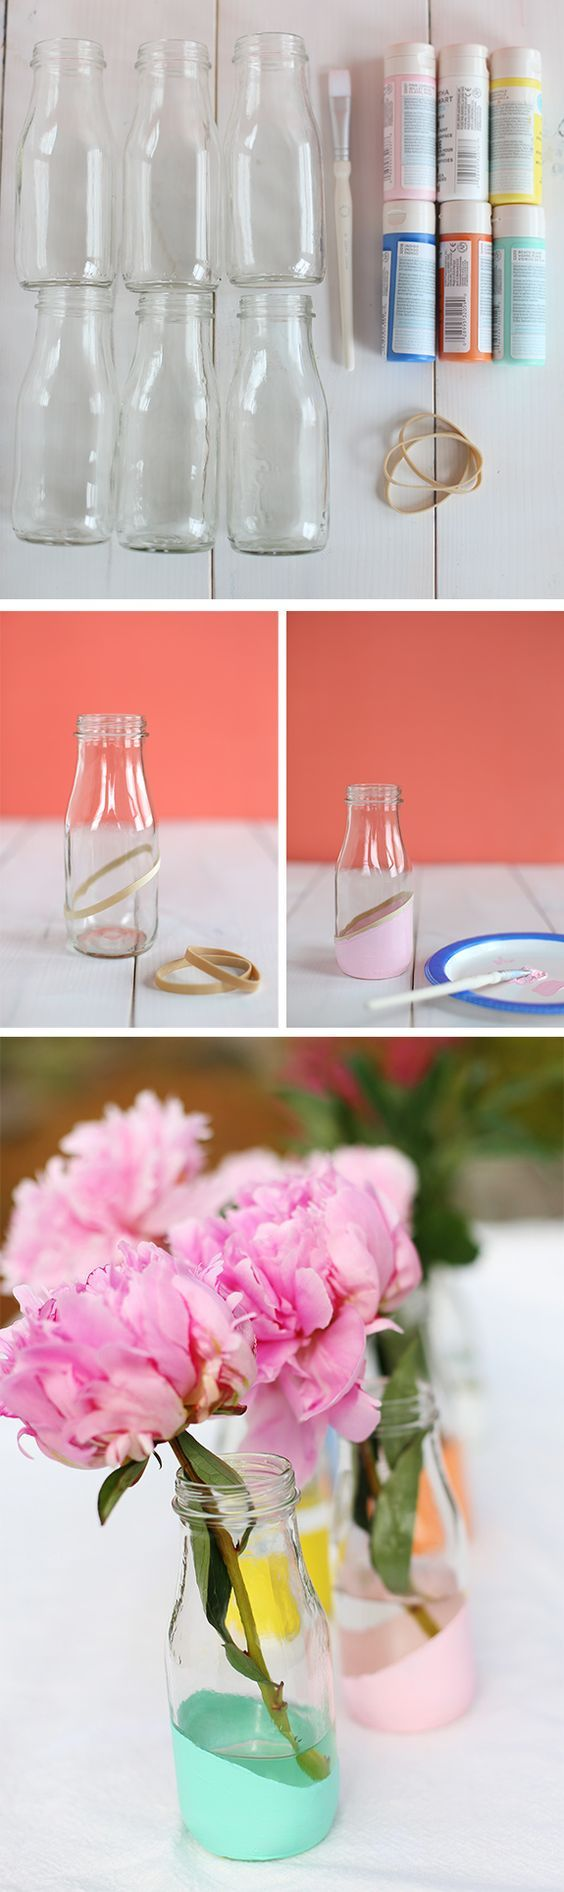 DIY: pastel dipped milk bottle vases. These are the prettiest bud vases for spring decor. I love the pastel colors.